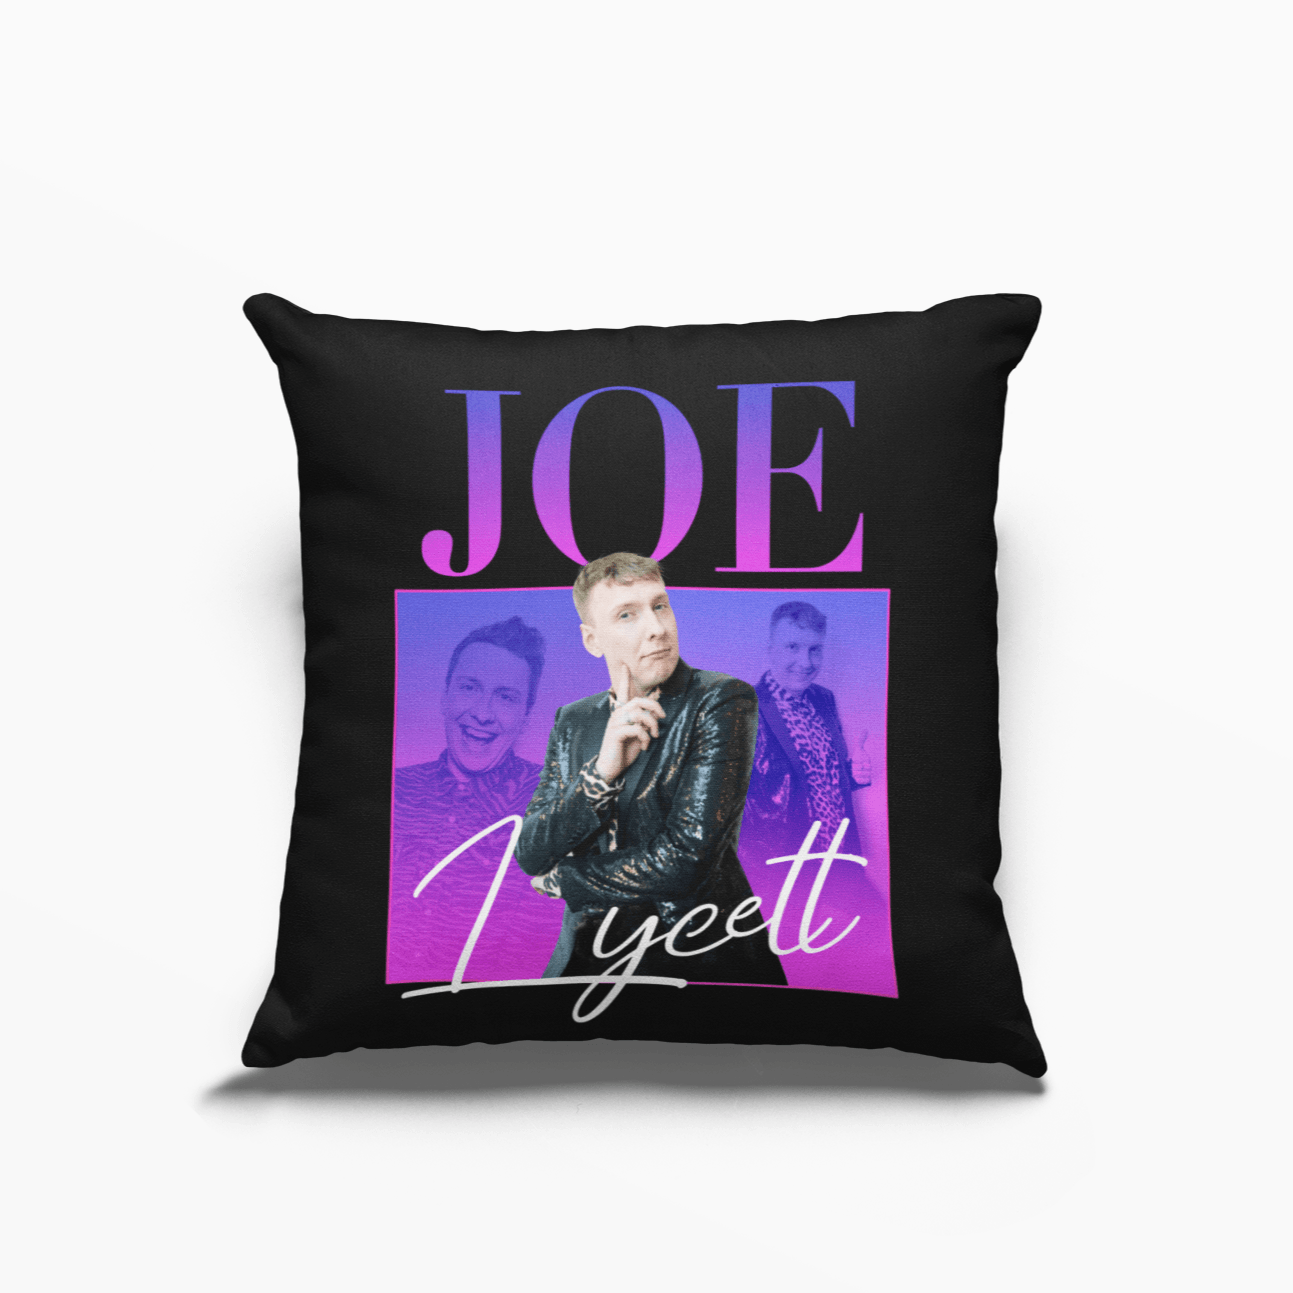 Joe Lycett Poly Linen Throwback Cushion - Timeless Tees